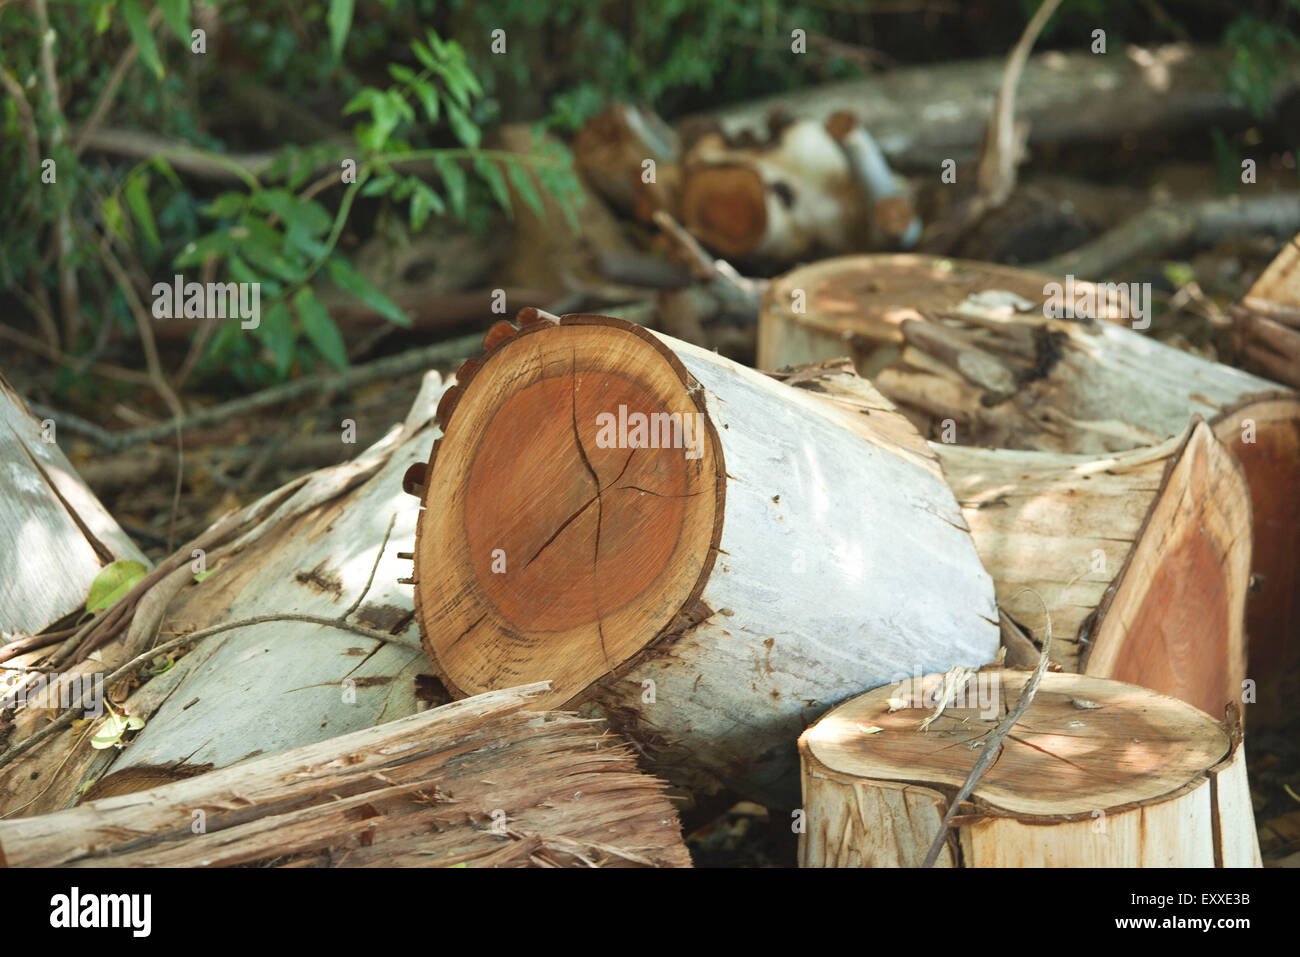 Pile of cut wood - Stock Image